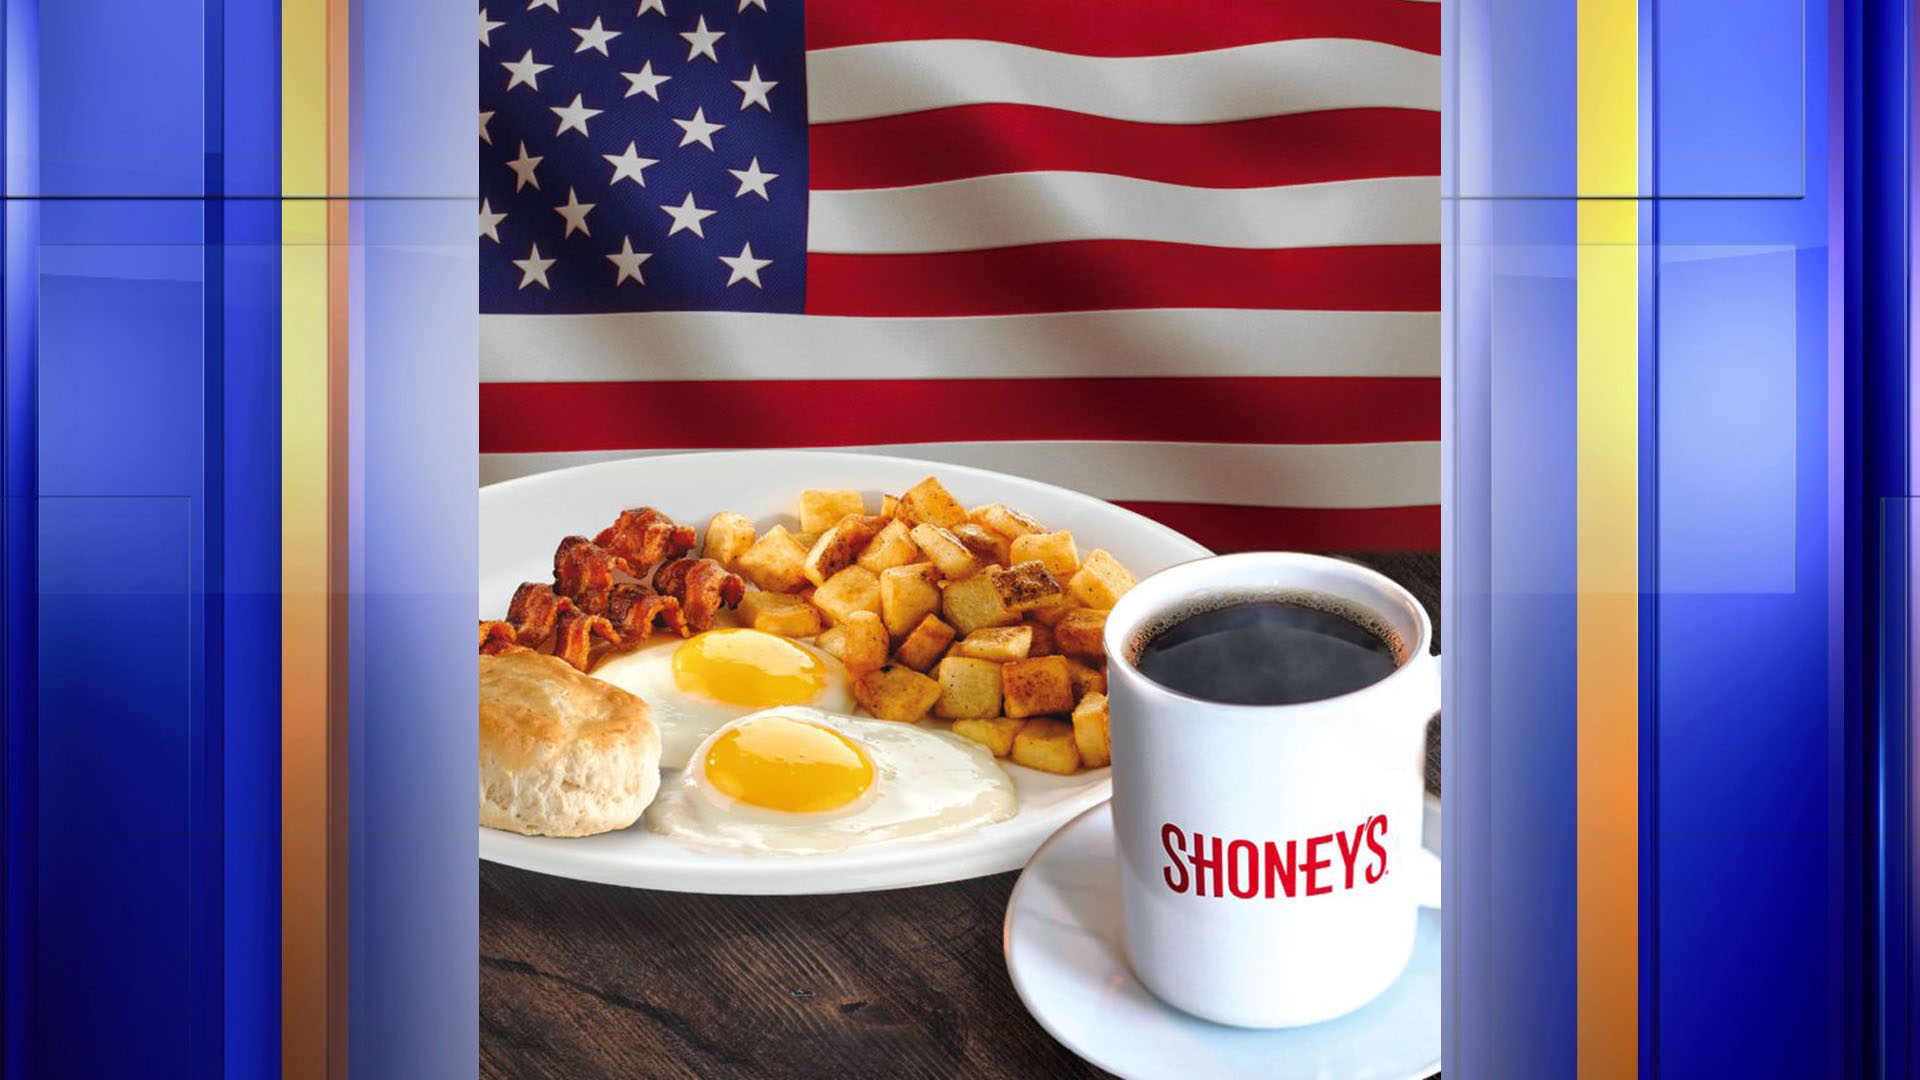 Shoneys In Knoxville Christmas Day Hrs For 2020 Veterans: Your free breakfast awaits at Shoney's on Veterans Day